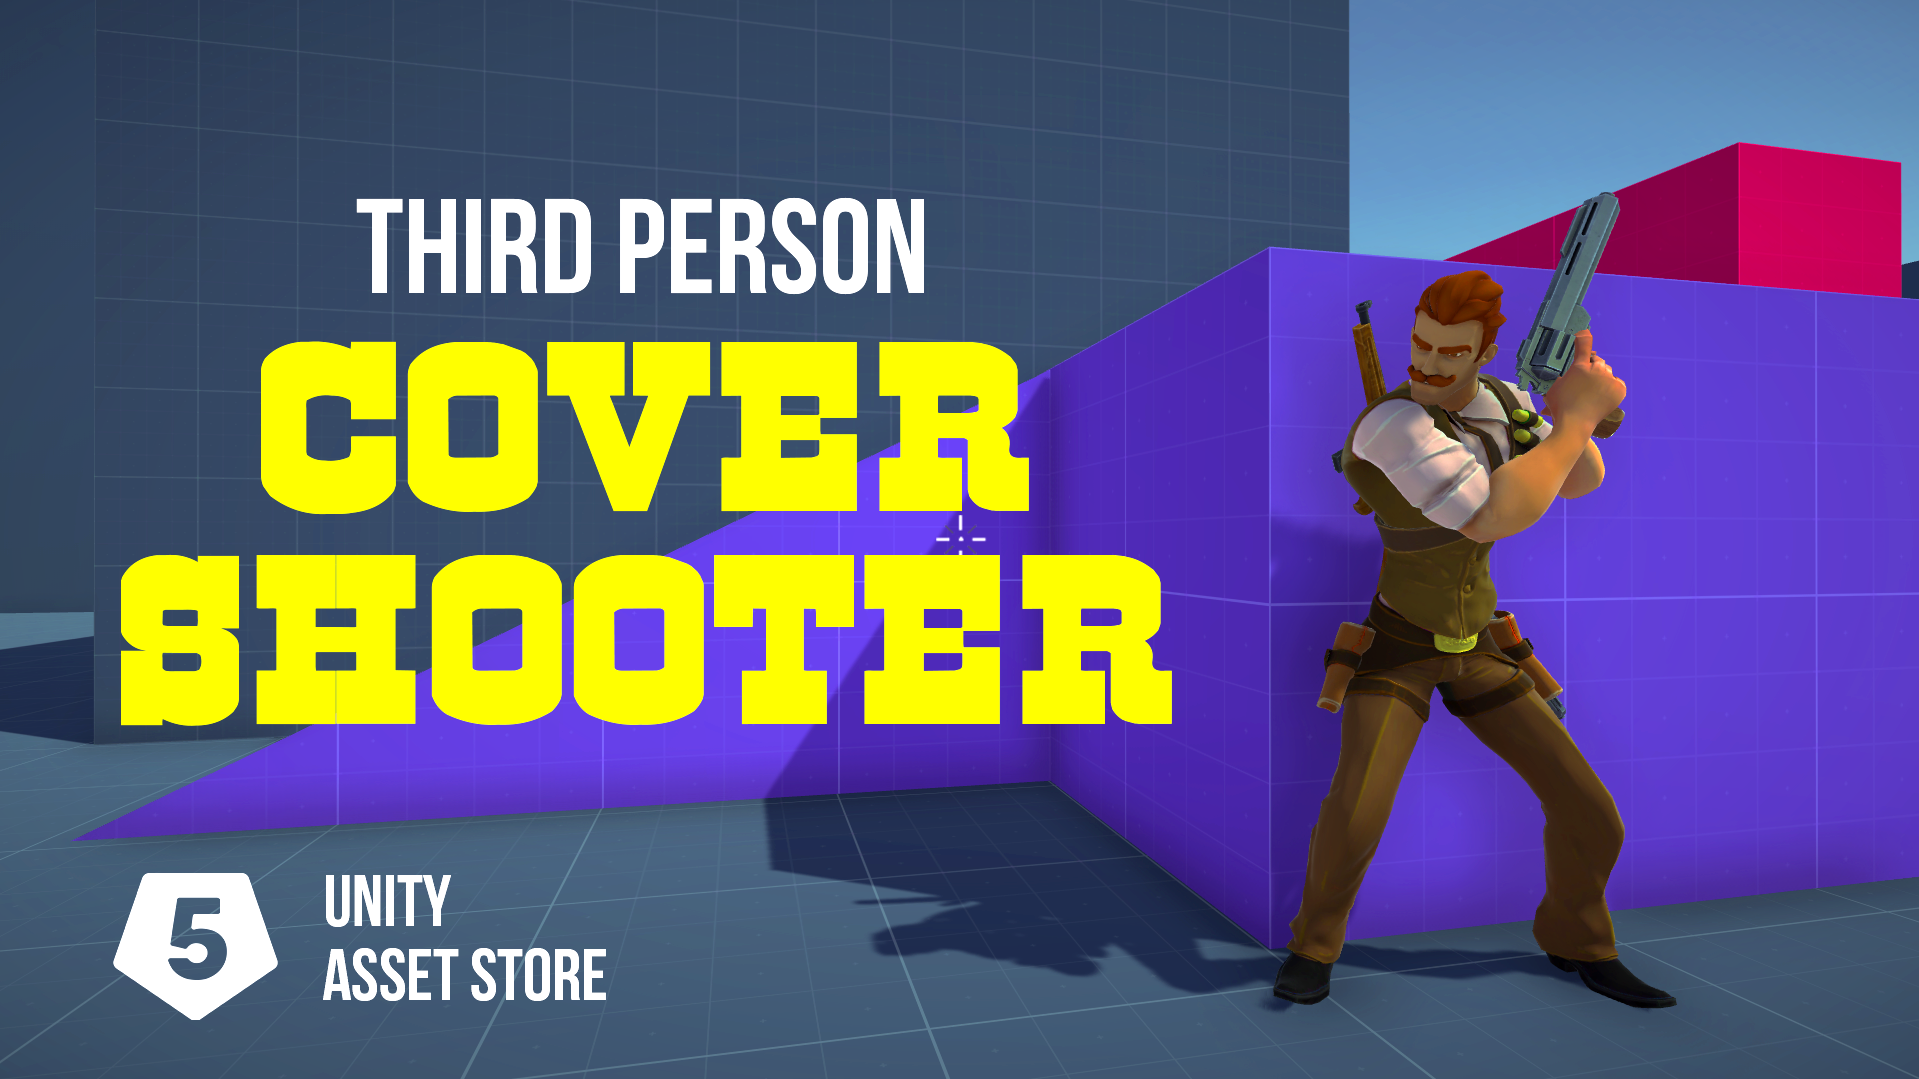 Third person cover shooter